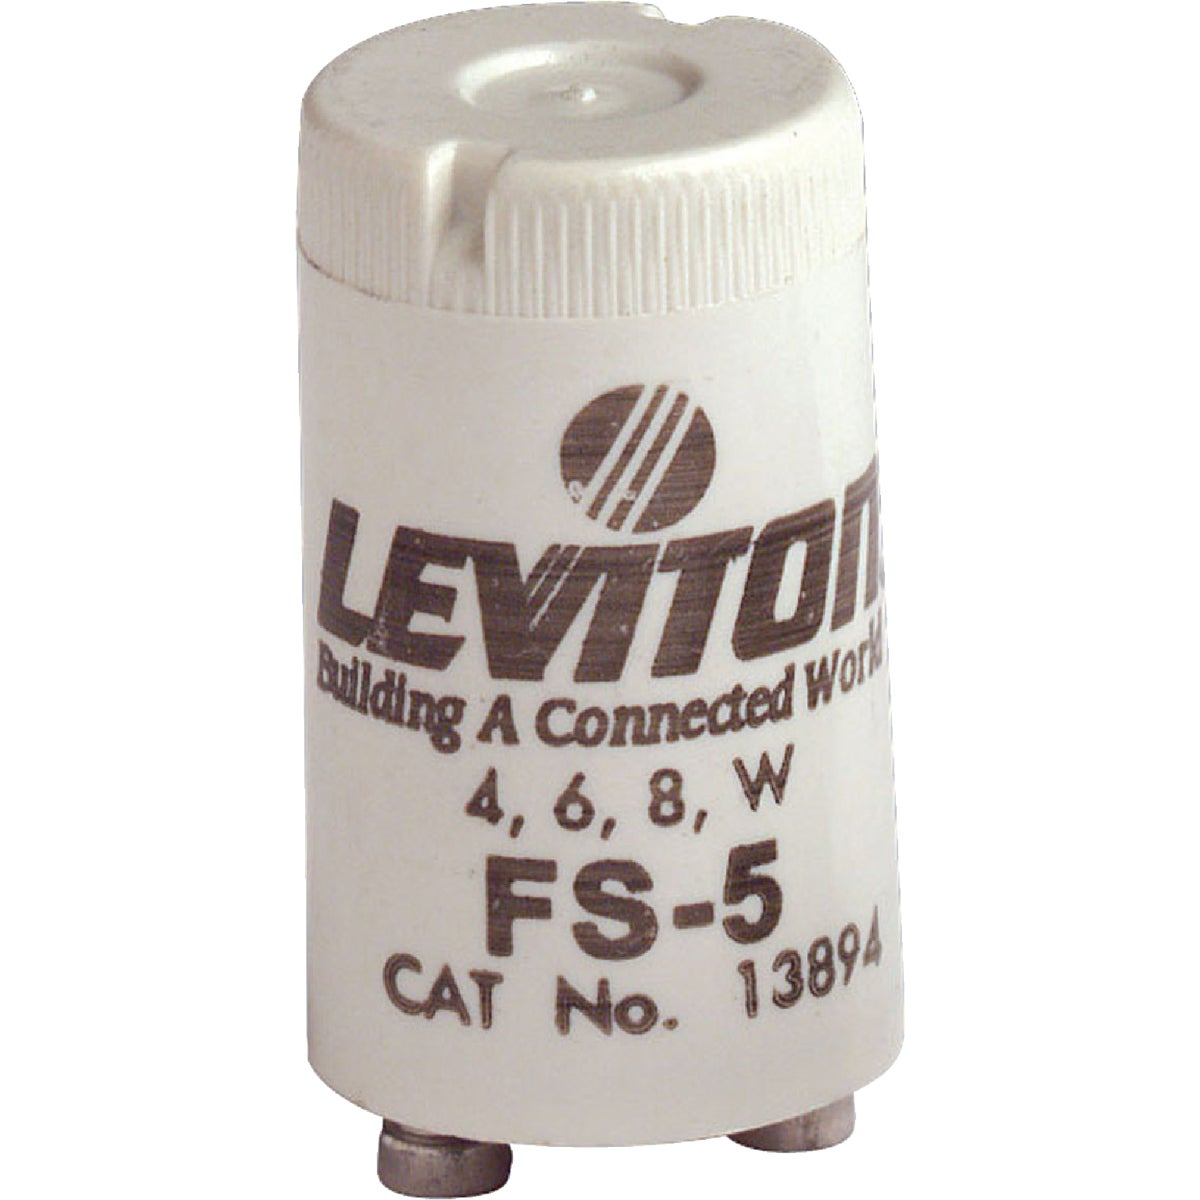 FLUOR STARTER - 001-13894 by Leviton Mfg Co